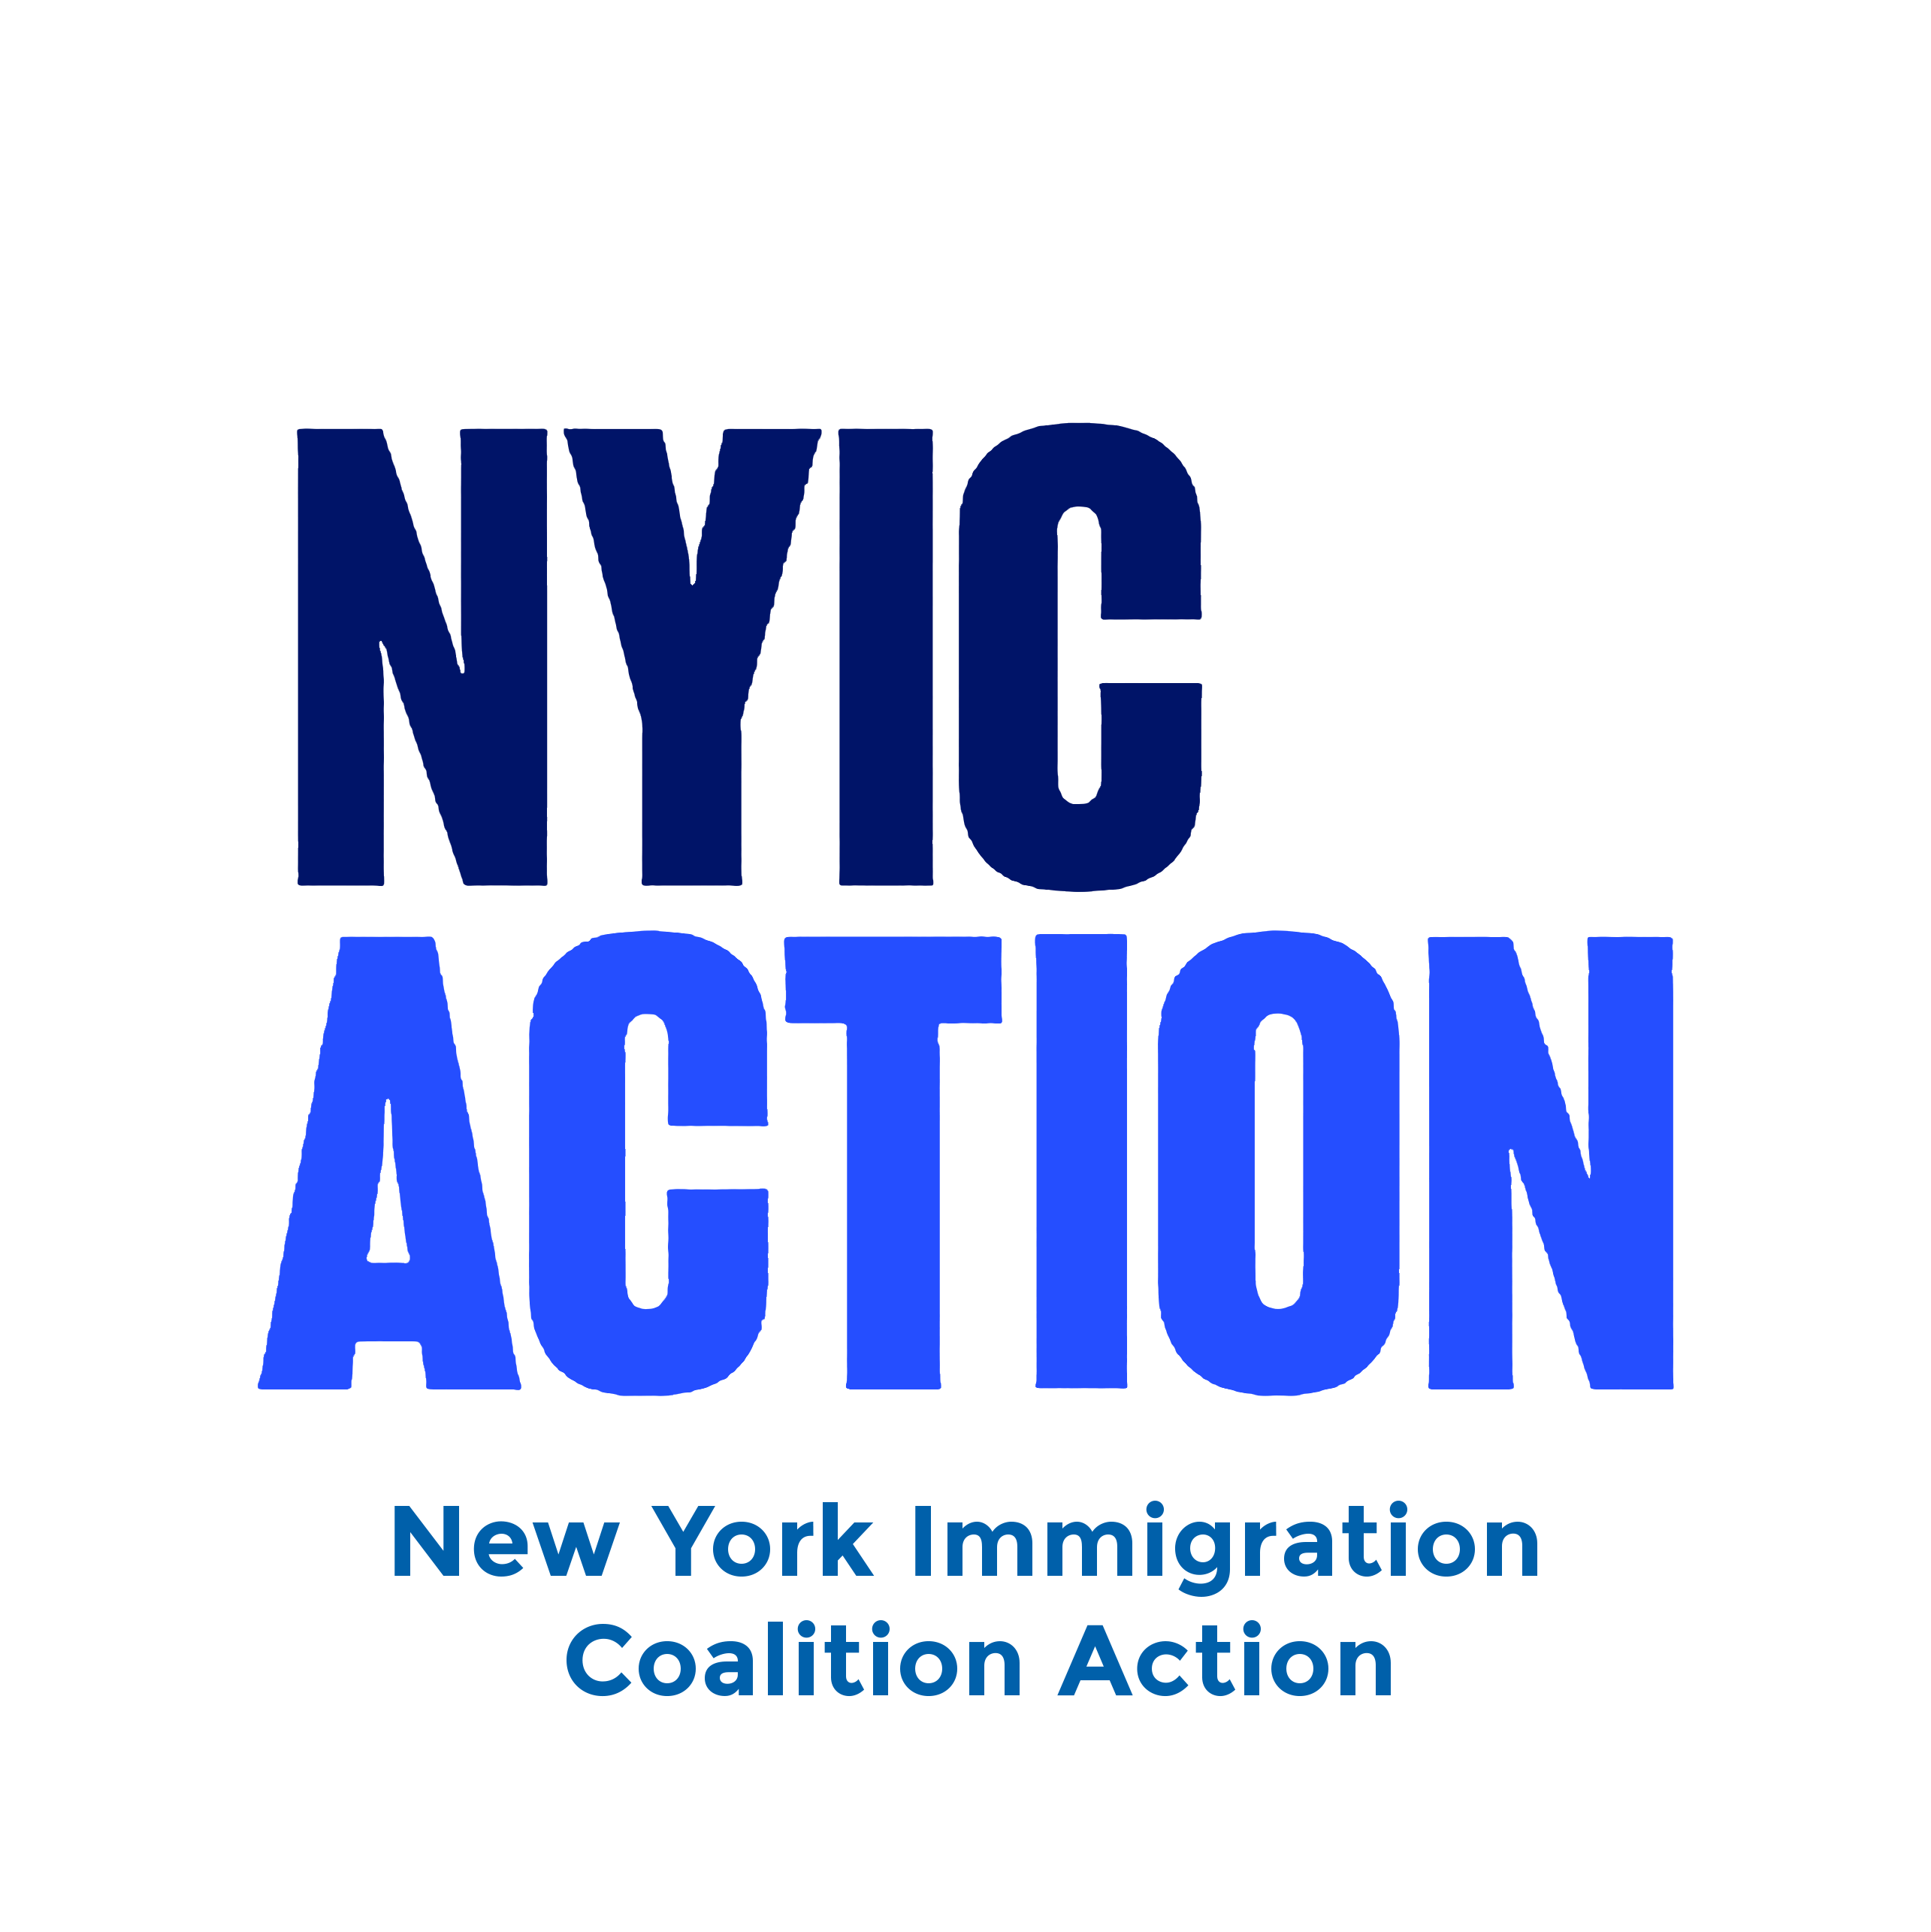 New York Immigration Coalition Action logo